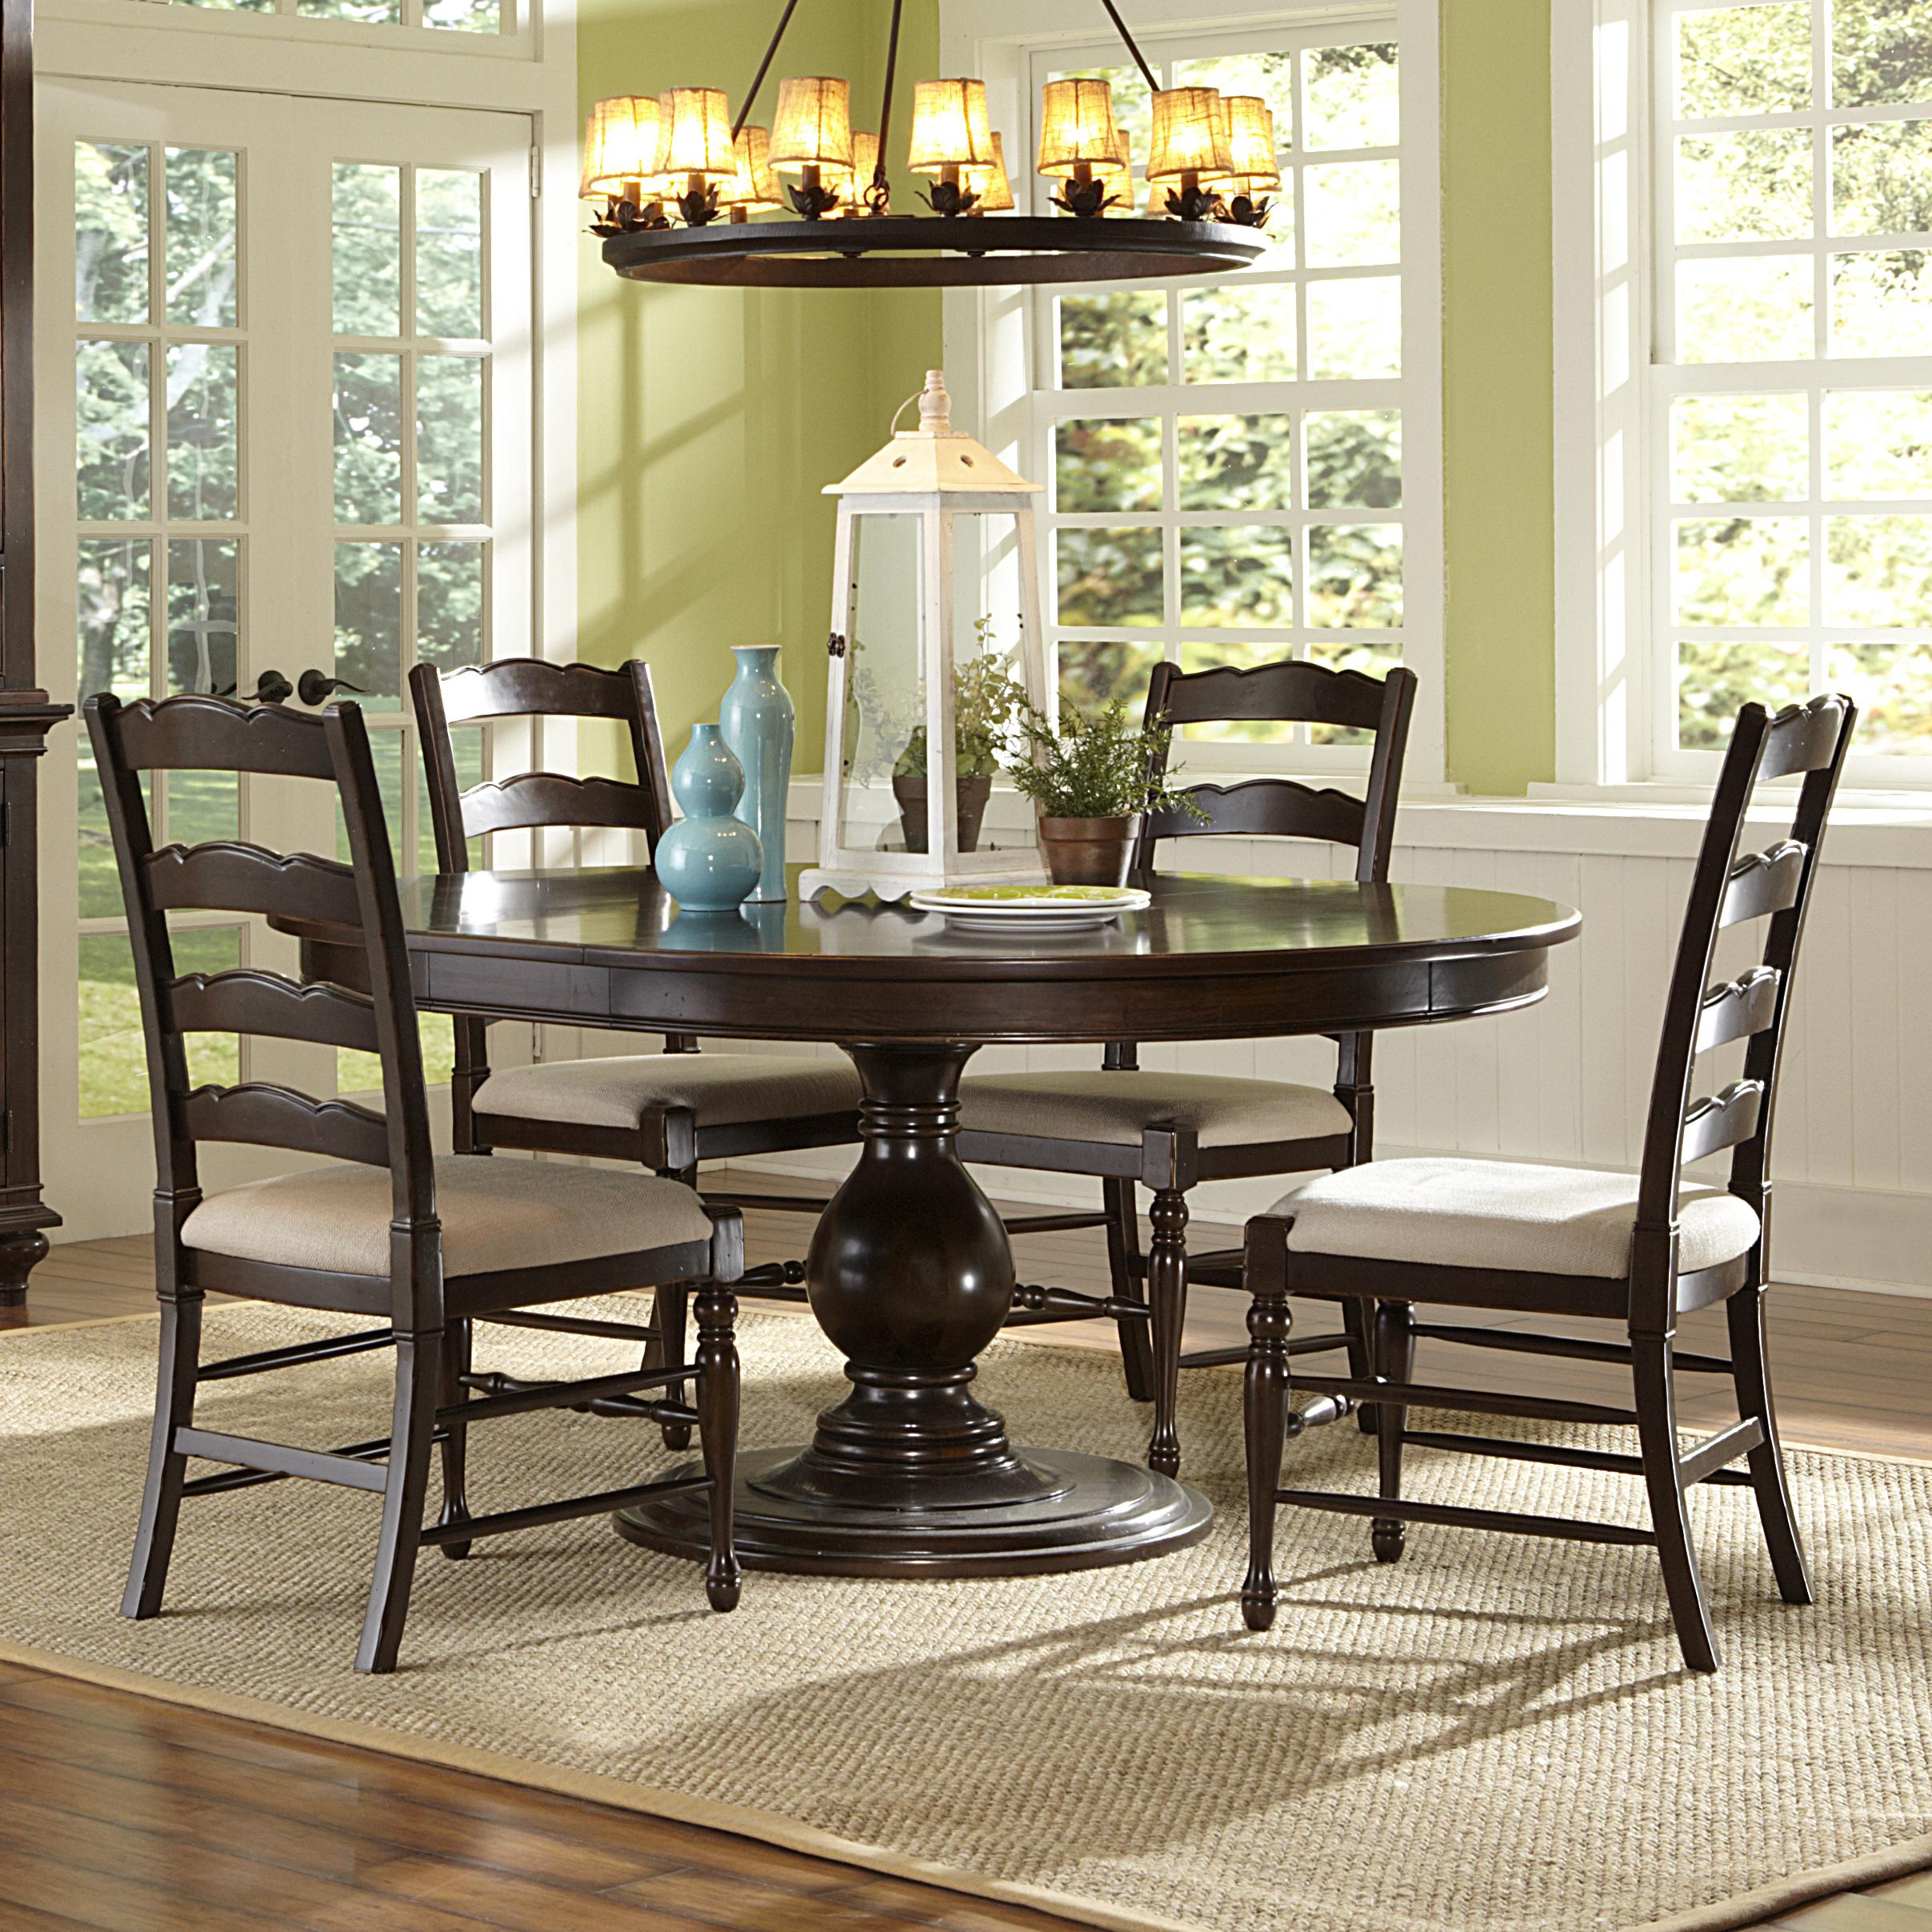 Magnussen Home  Loren 5 Piece Round Table and Chairs Set - Item Number: D2470-22+4x62